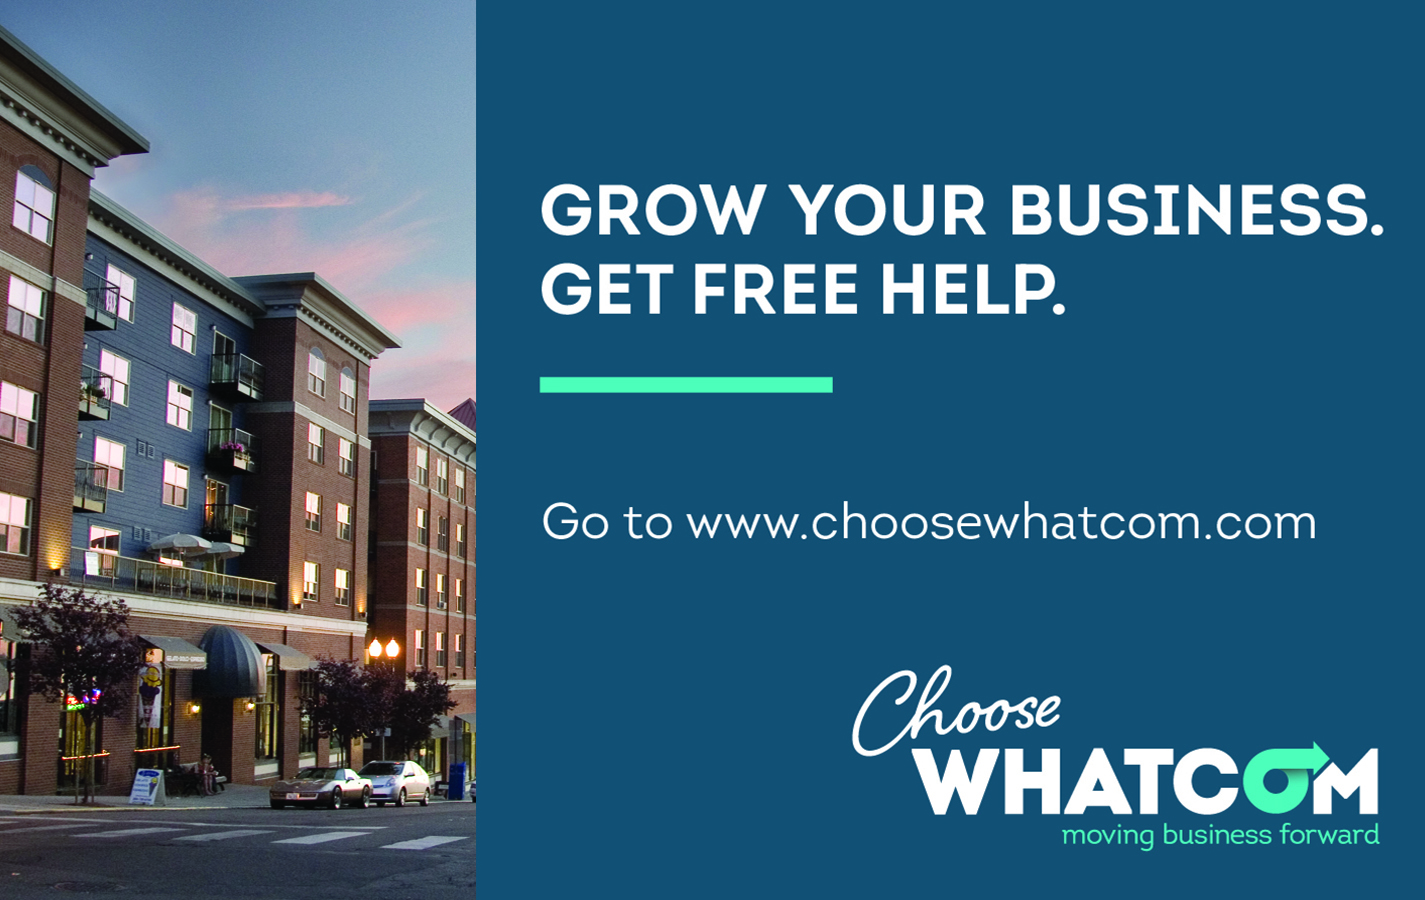 Choose Whatcom